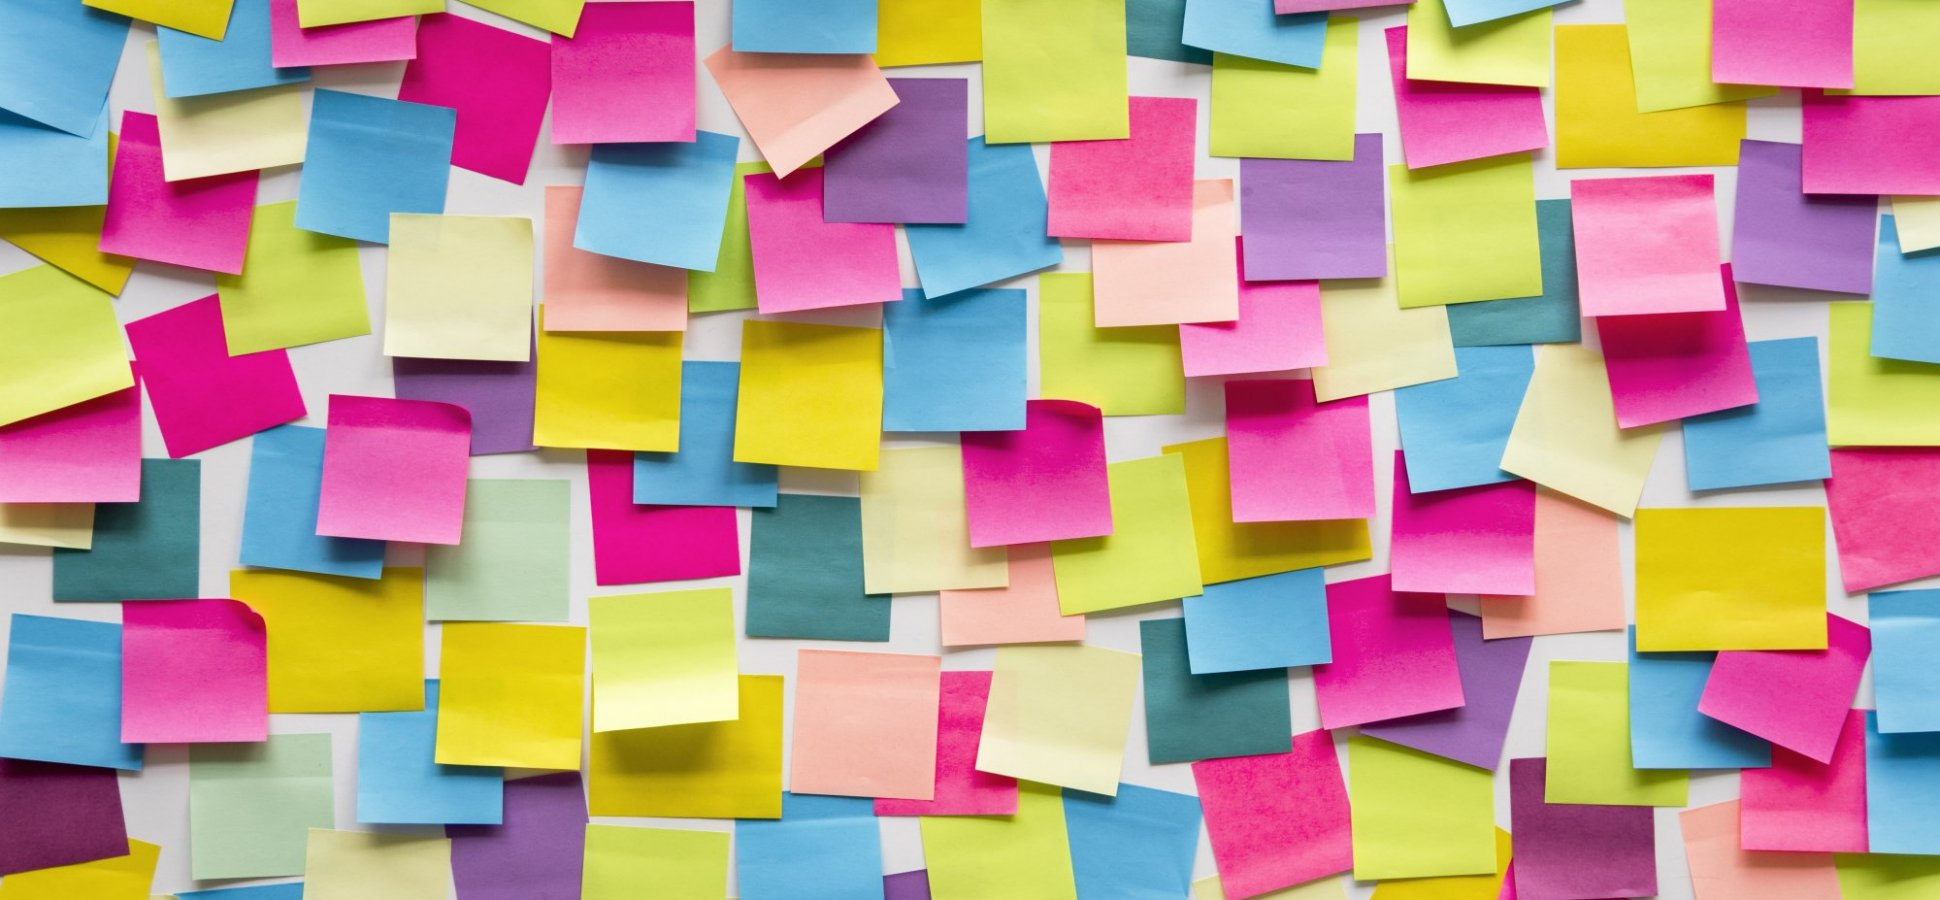 The Biggest Mistake You're Making When Generating Ideas